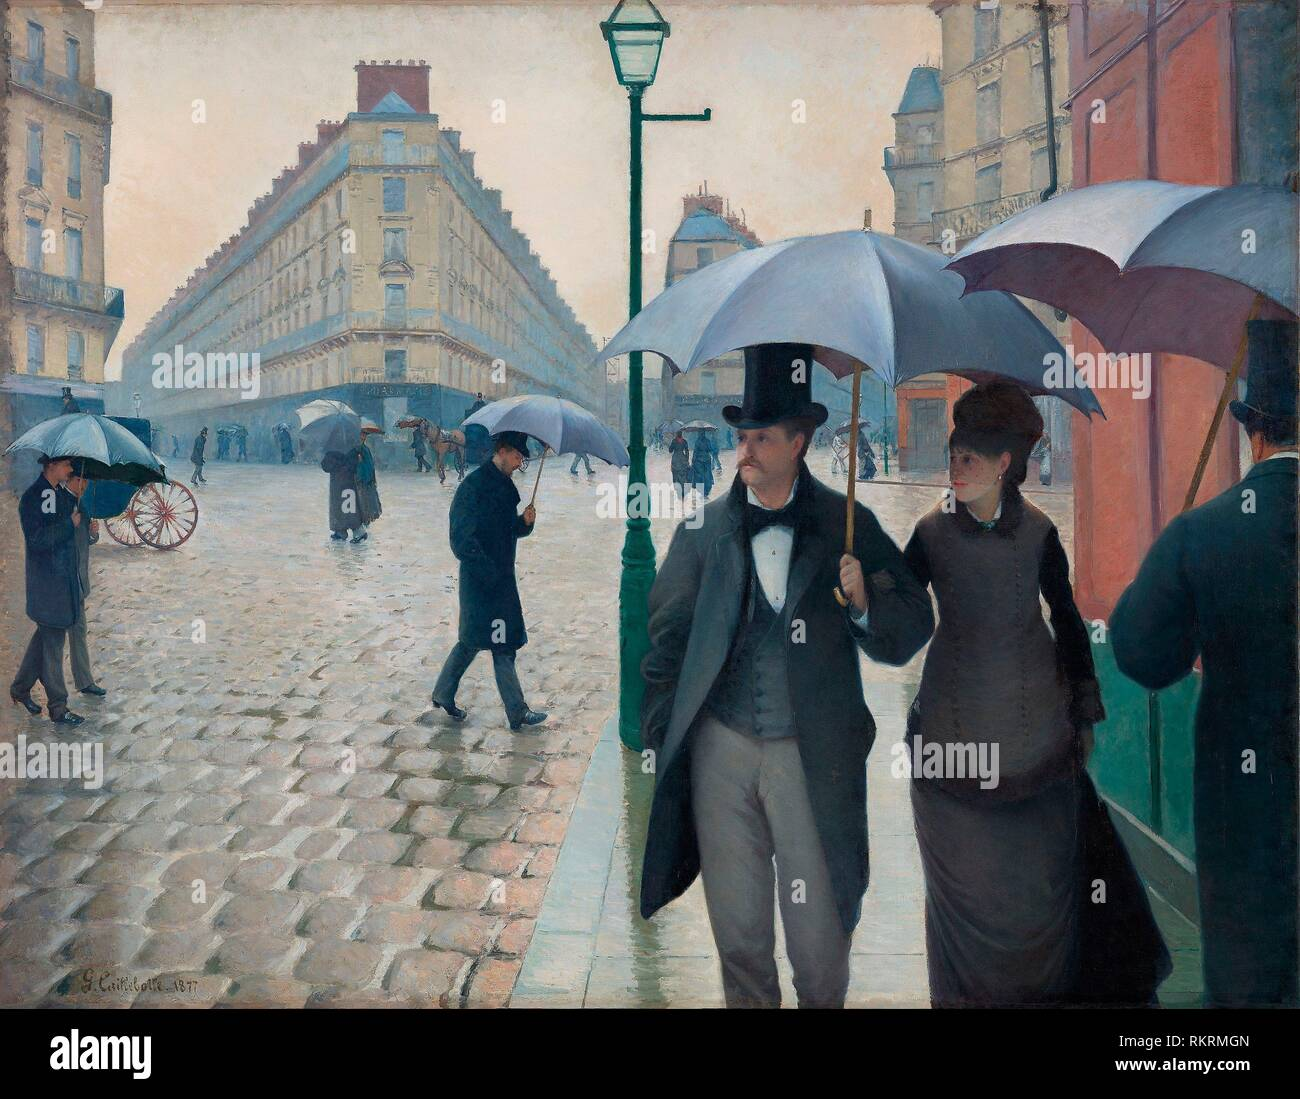 Paris Street; Rainy Day - 1877 - Gustave Caillebotte (French, 1848-1894) - Artist: Gustave Caillebotte, Origin: Paris, Date: 1877, Medium: Oil on - Stock Image